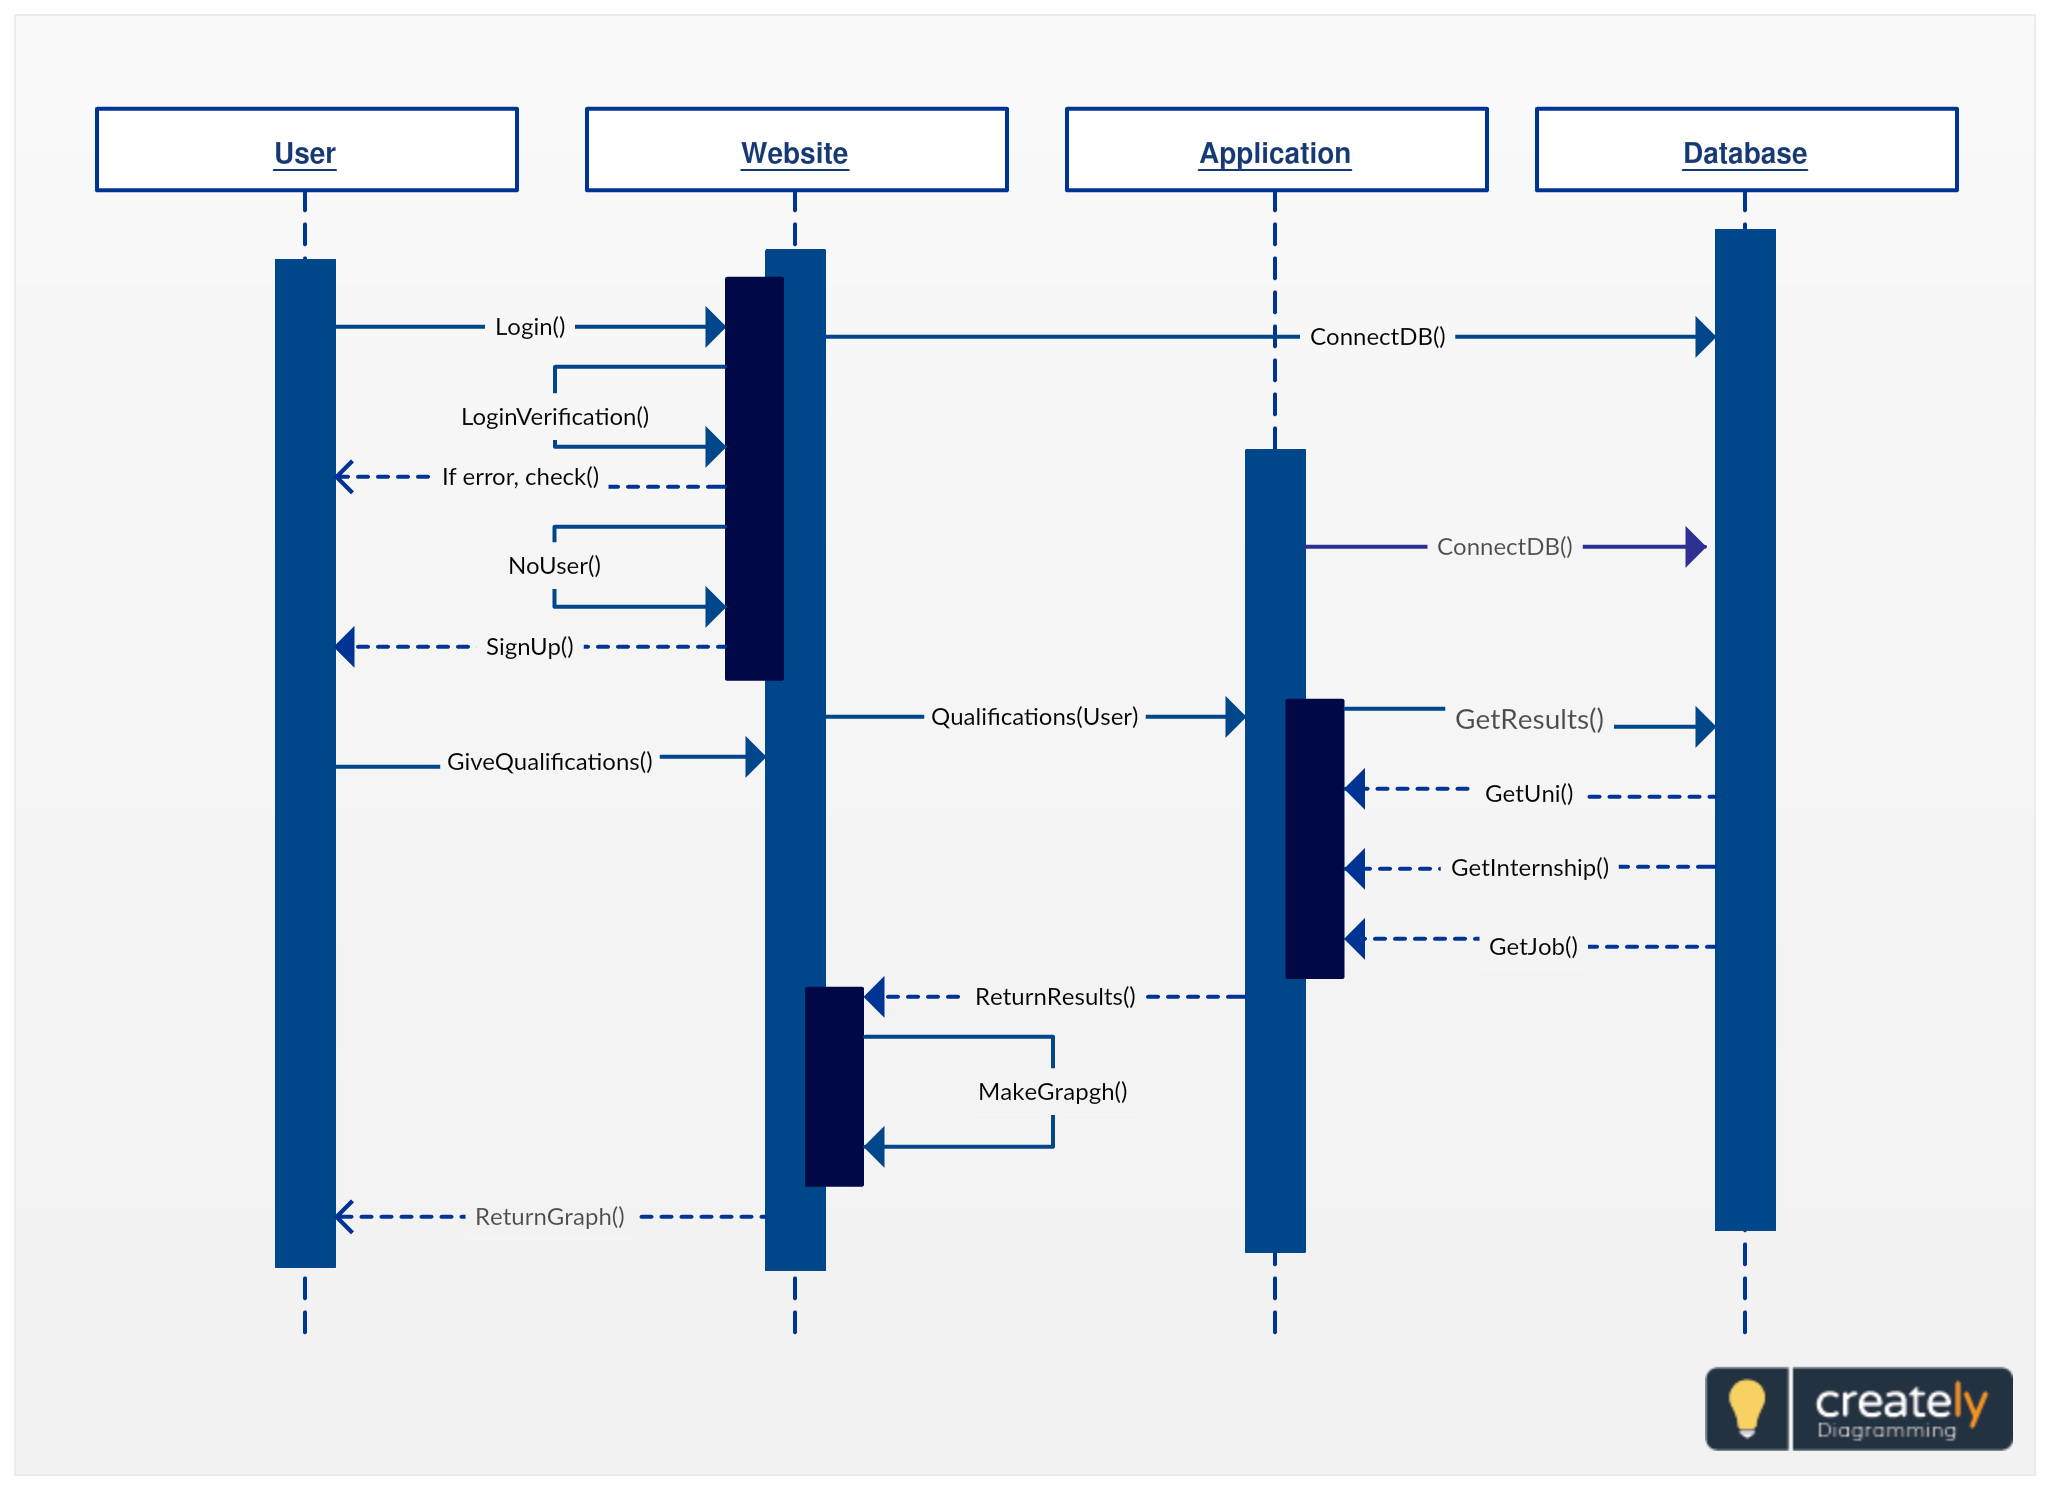 small resolution of uml sequence diagram for sky canoe sequence diagram shows the user interaction in the system to sign up click on the diagram to edit online and download